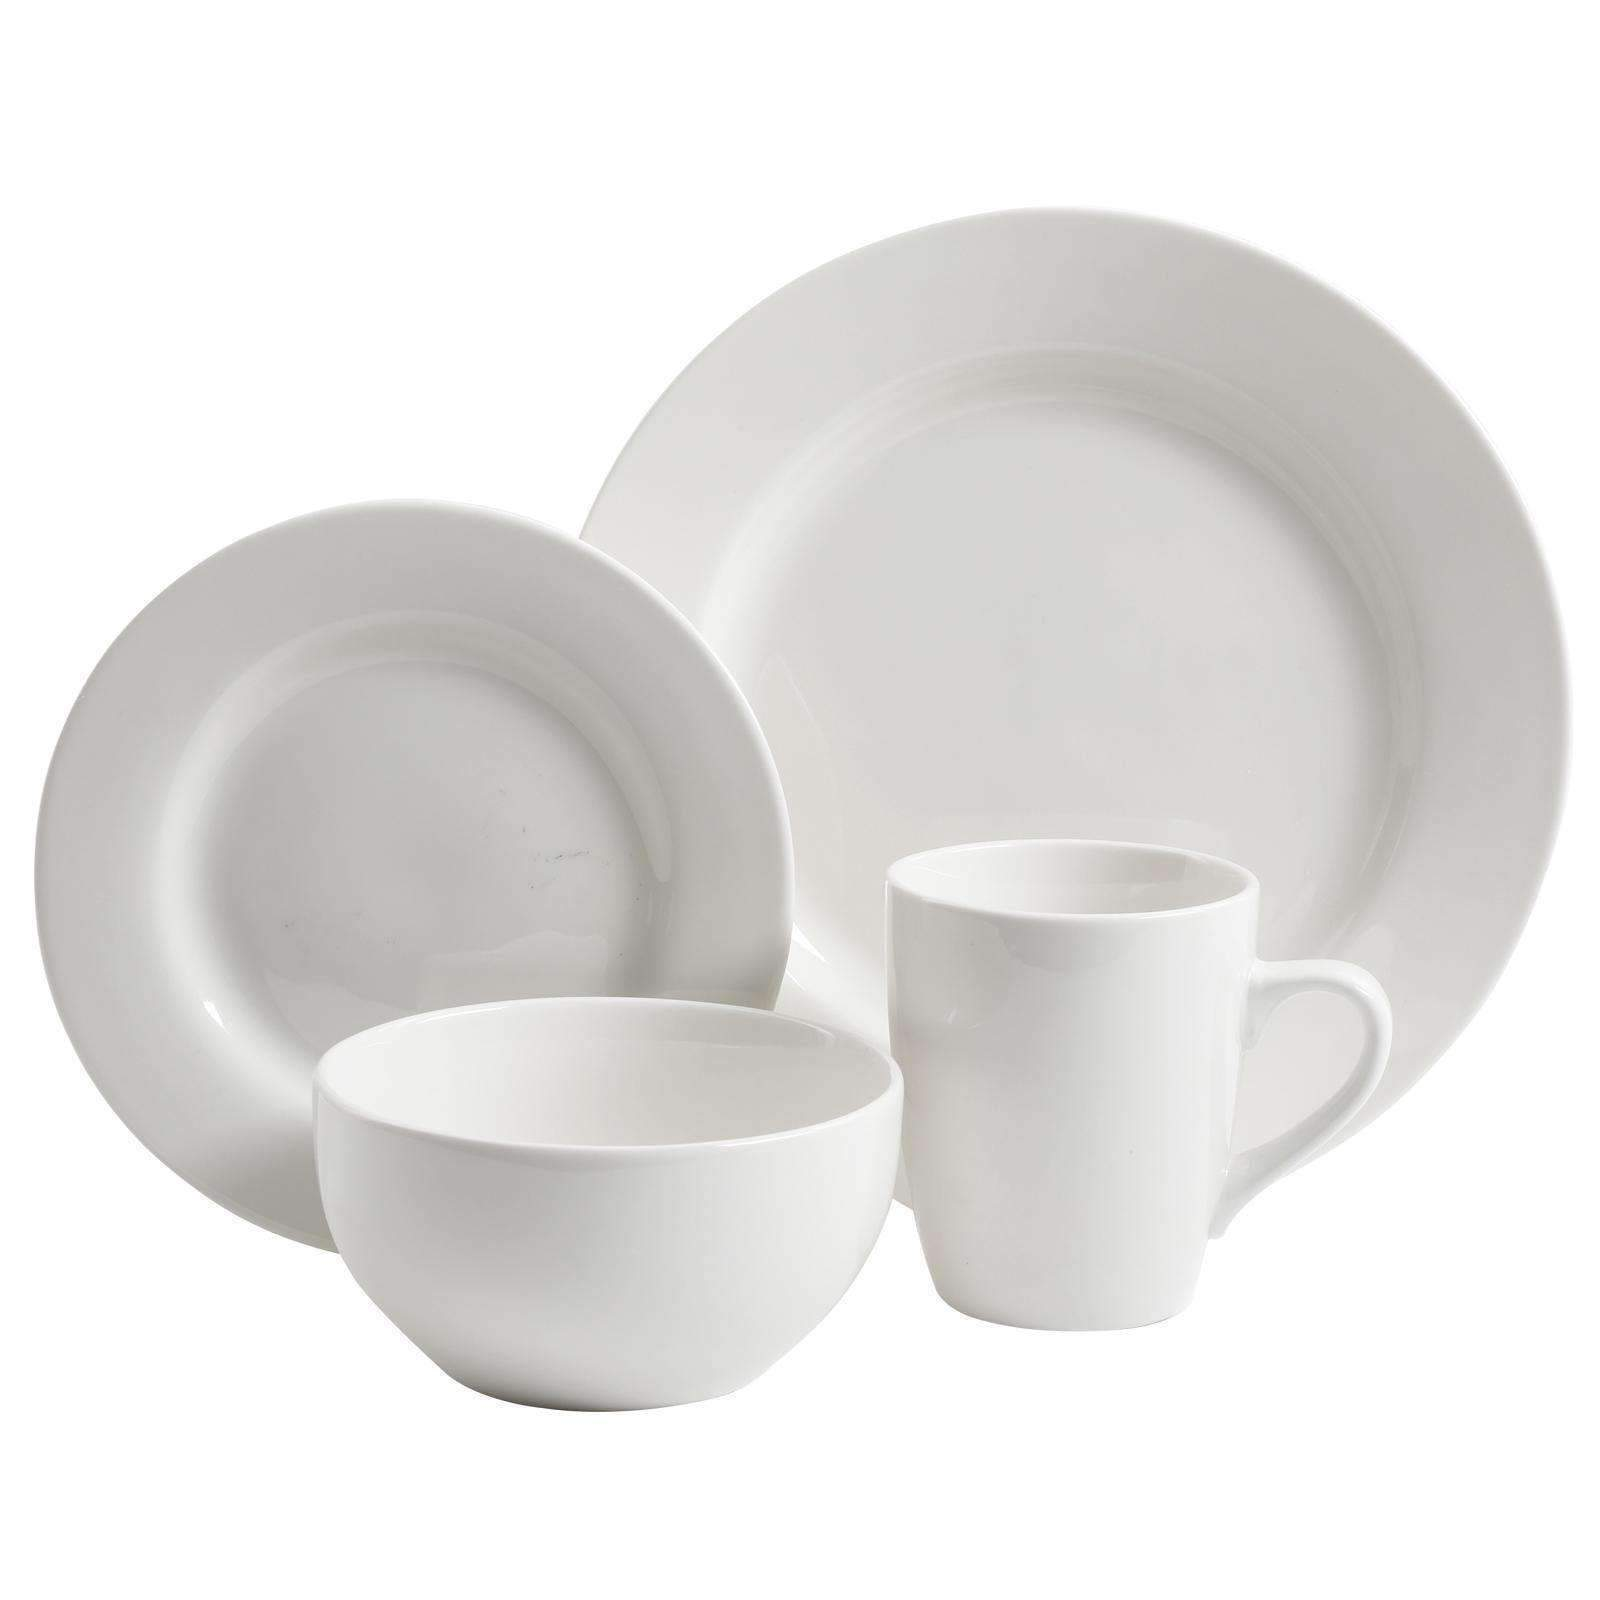 GibsonElite Dinnerware Sets Gibson Elite Gracious Dining 16-Piece Hotelware Set made of Fine Ceramic in White